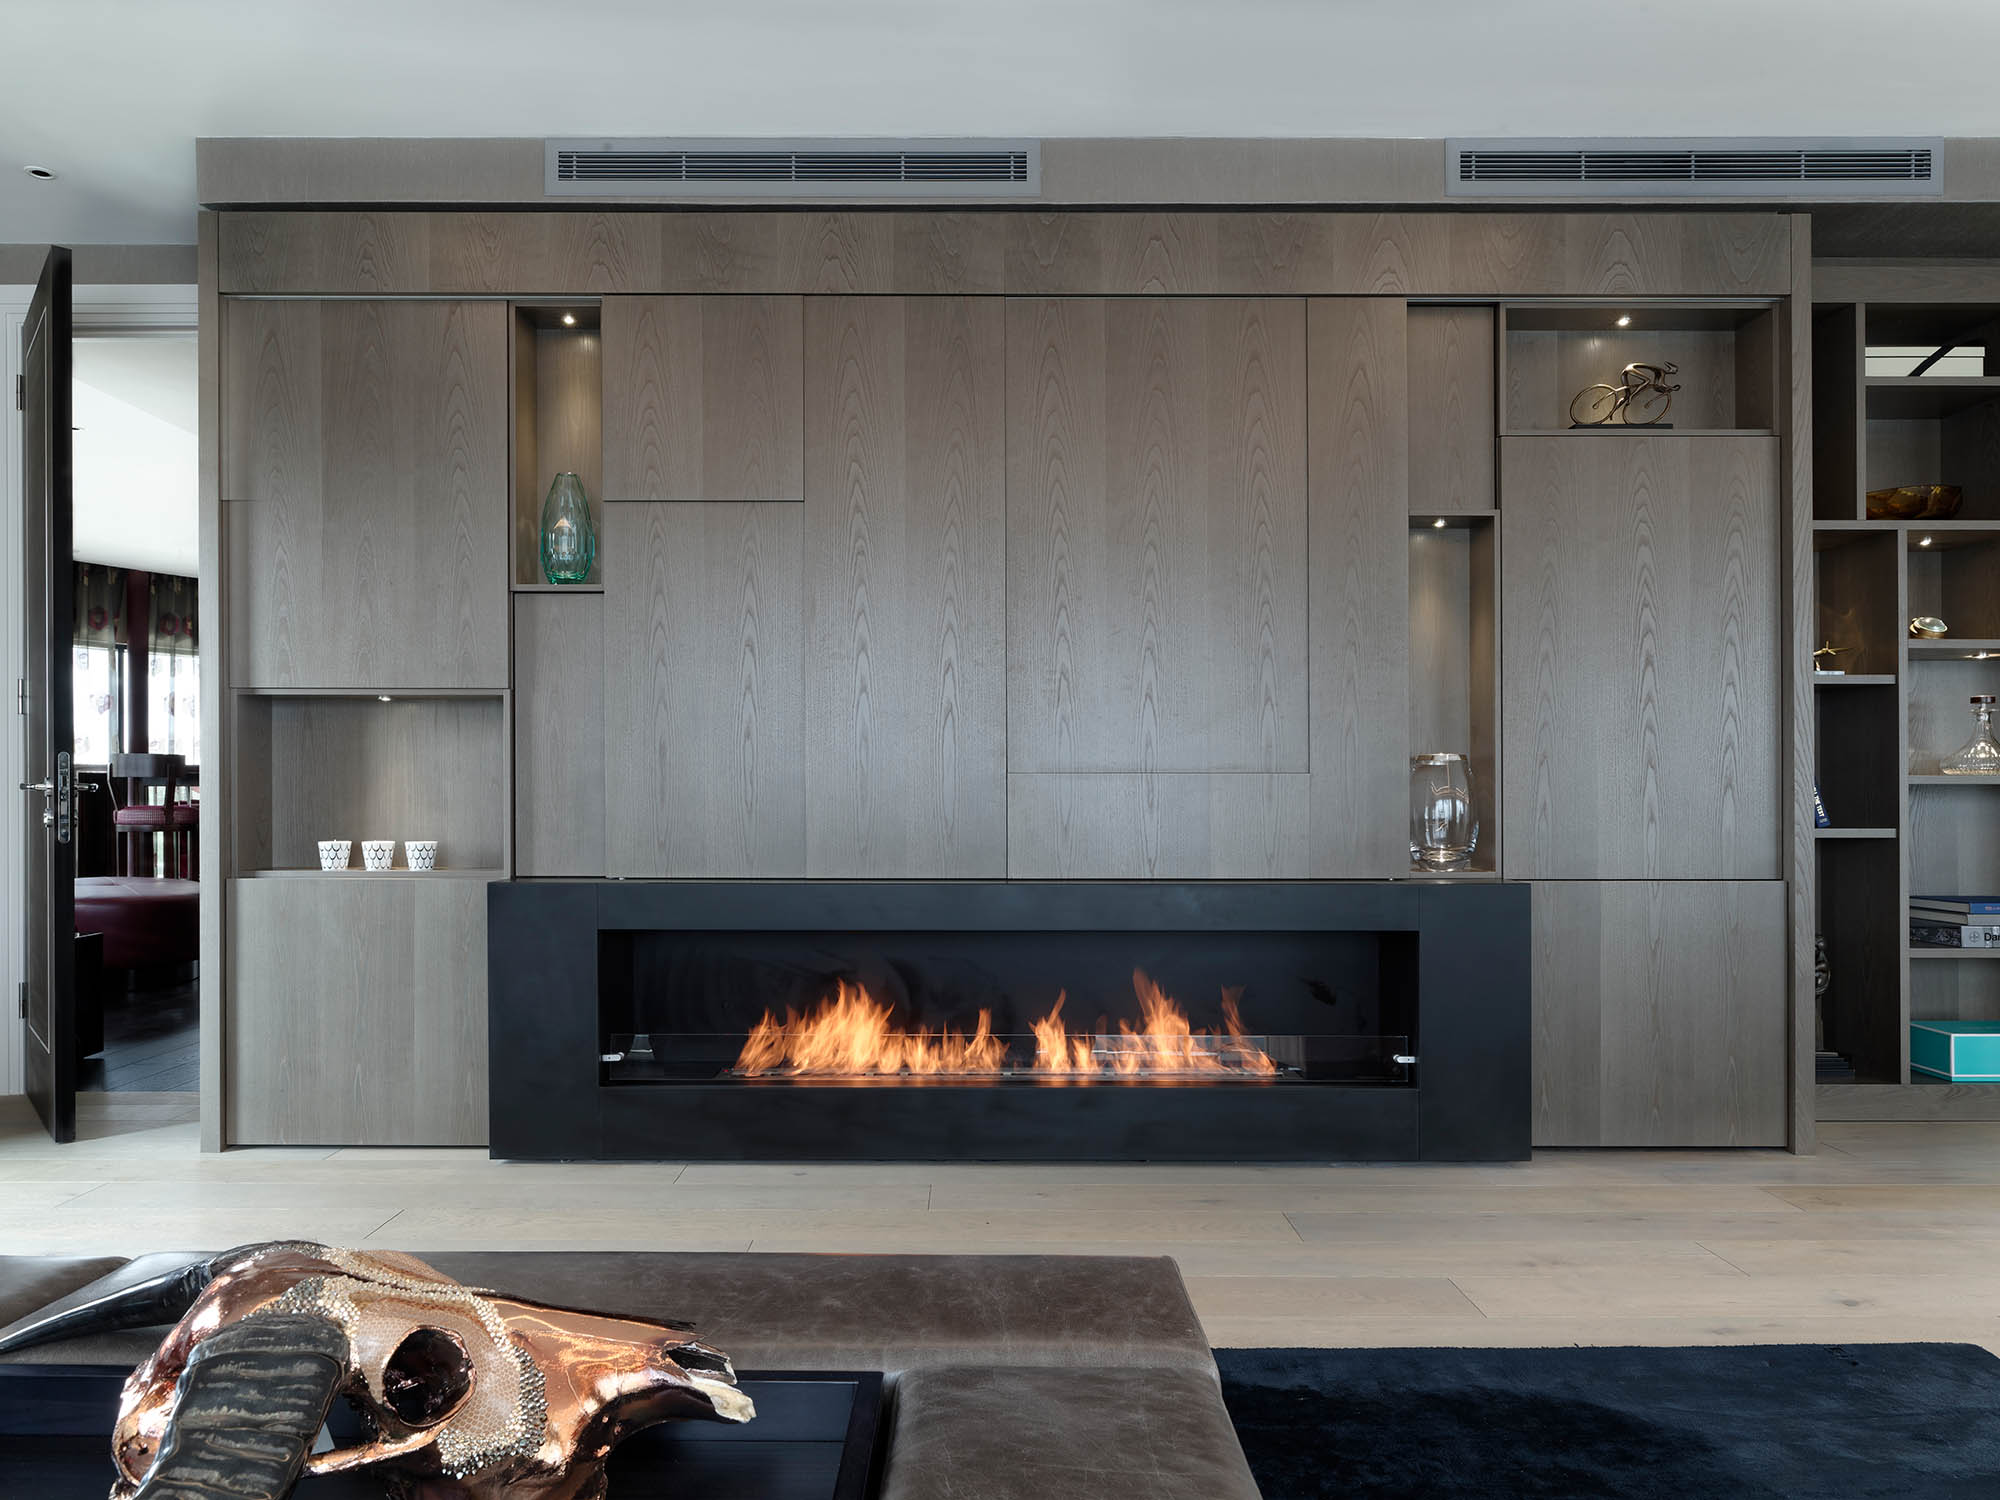 Feature letterbox fireplace, media wall and display cabinet for Luxury Chelsea Penthouse renovation